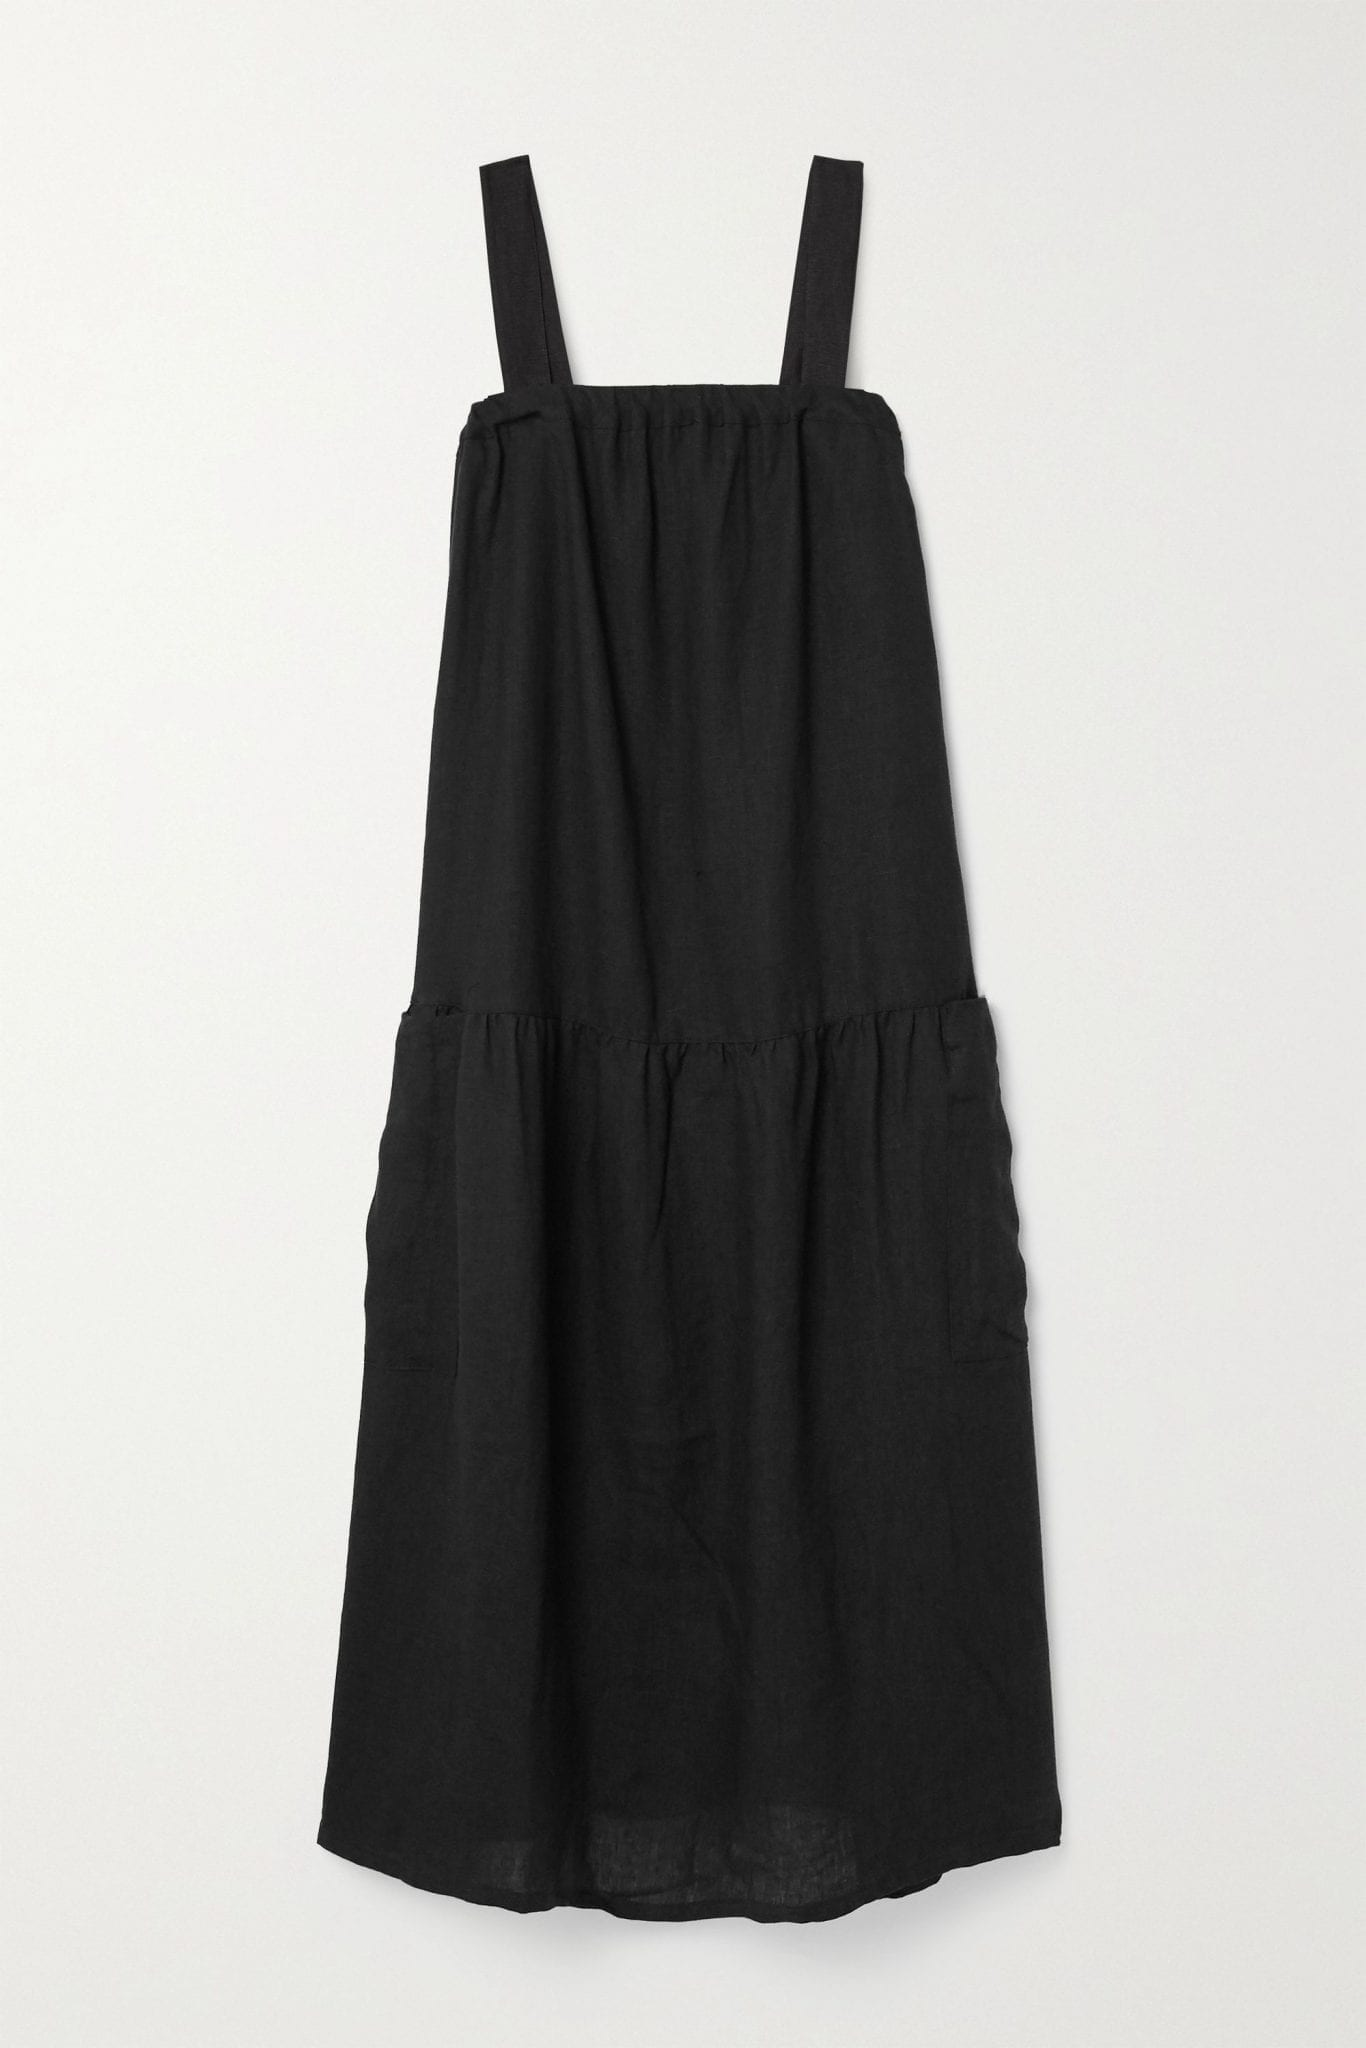 SUZIE KONDI Linen Midi Dress